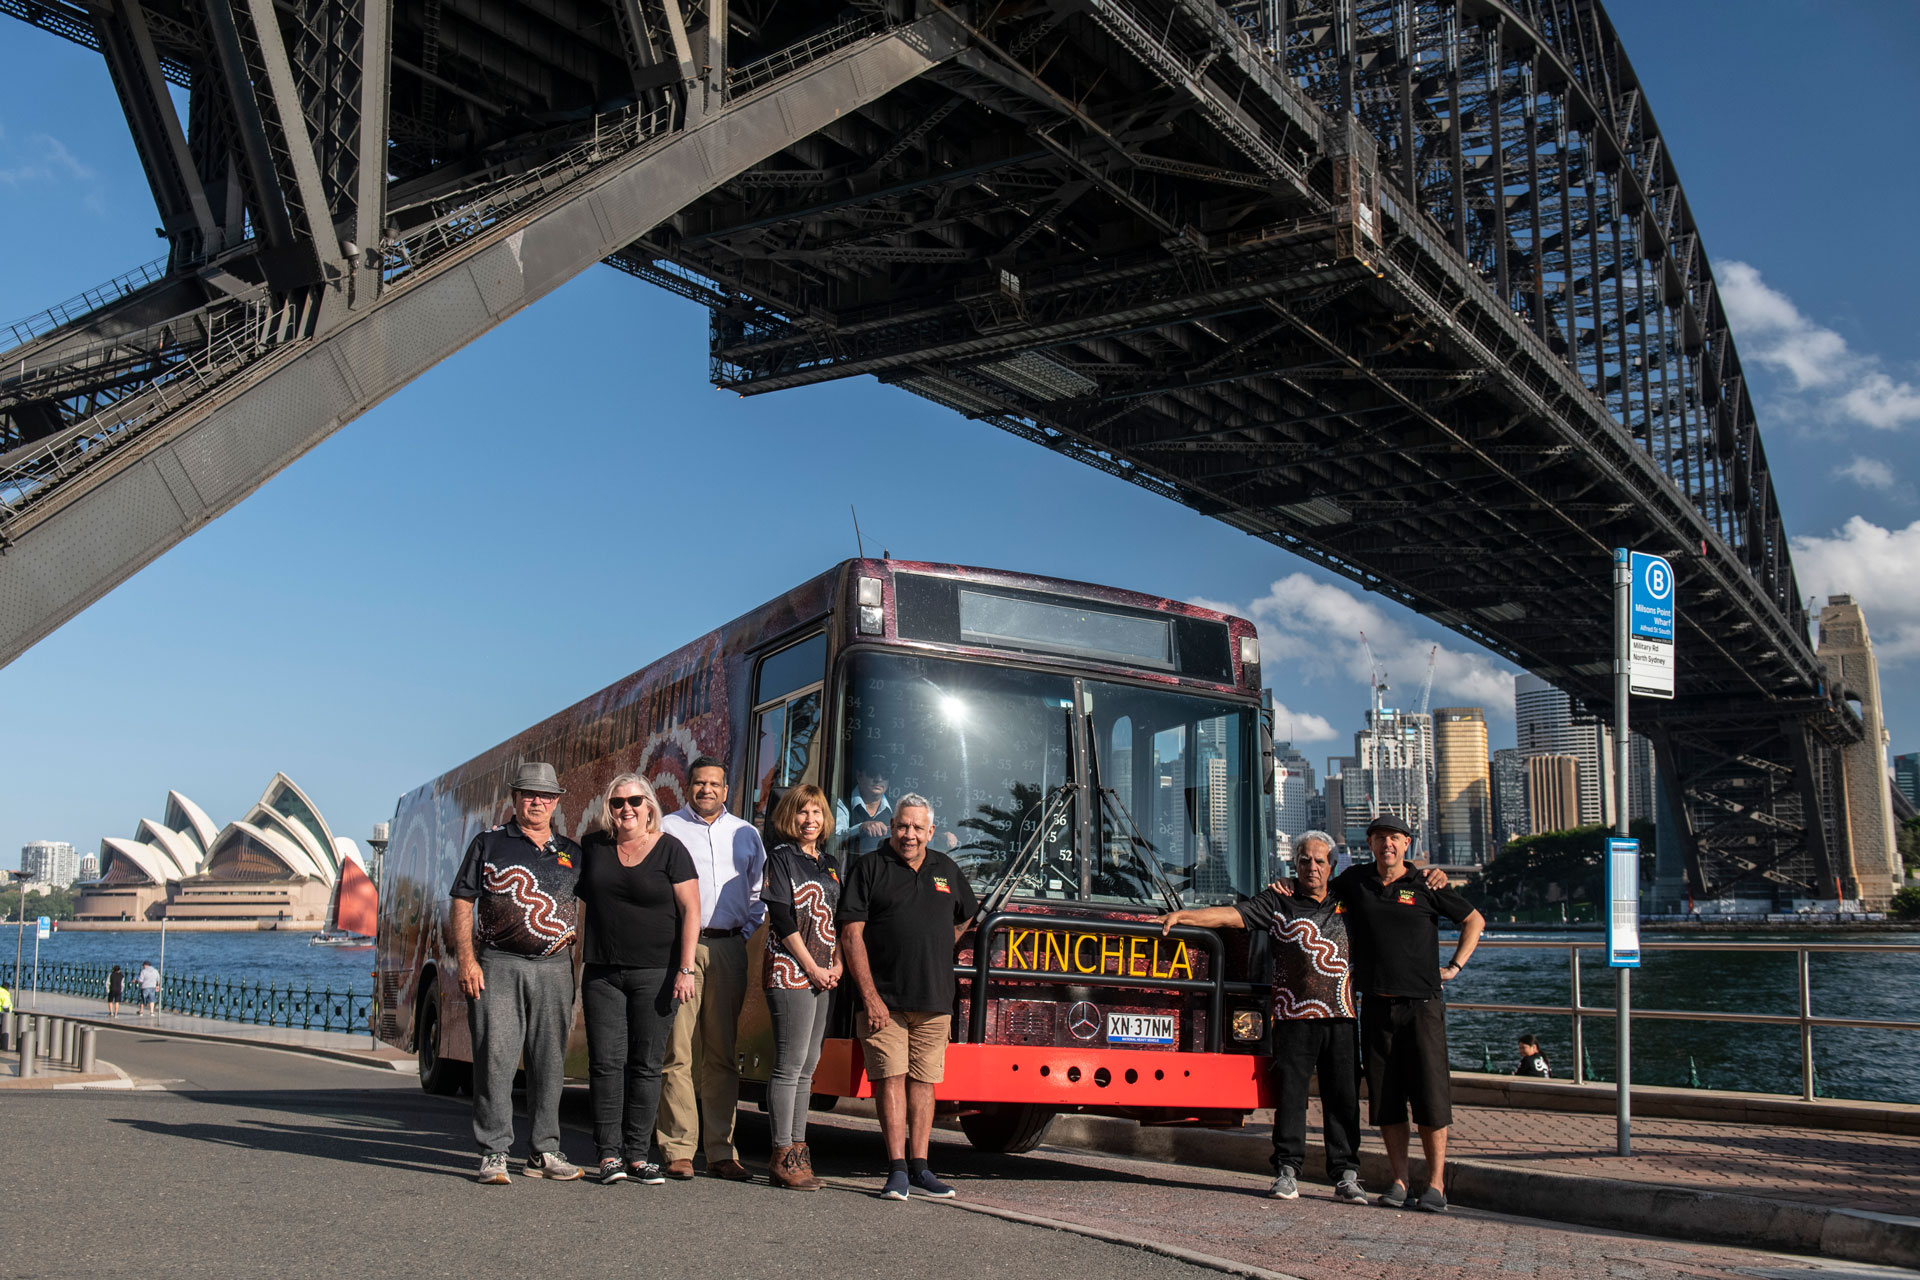 Images Stolen Generations Survivors Launch Sorry Day Campaign To Build Australias First Truth Telling Museum And Healing Centre 1 Min